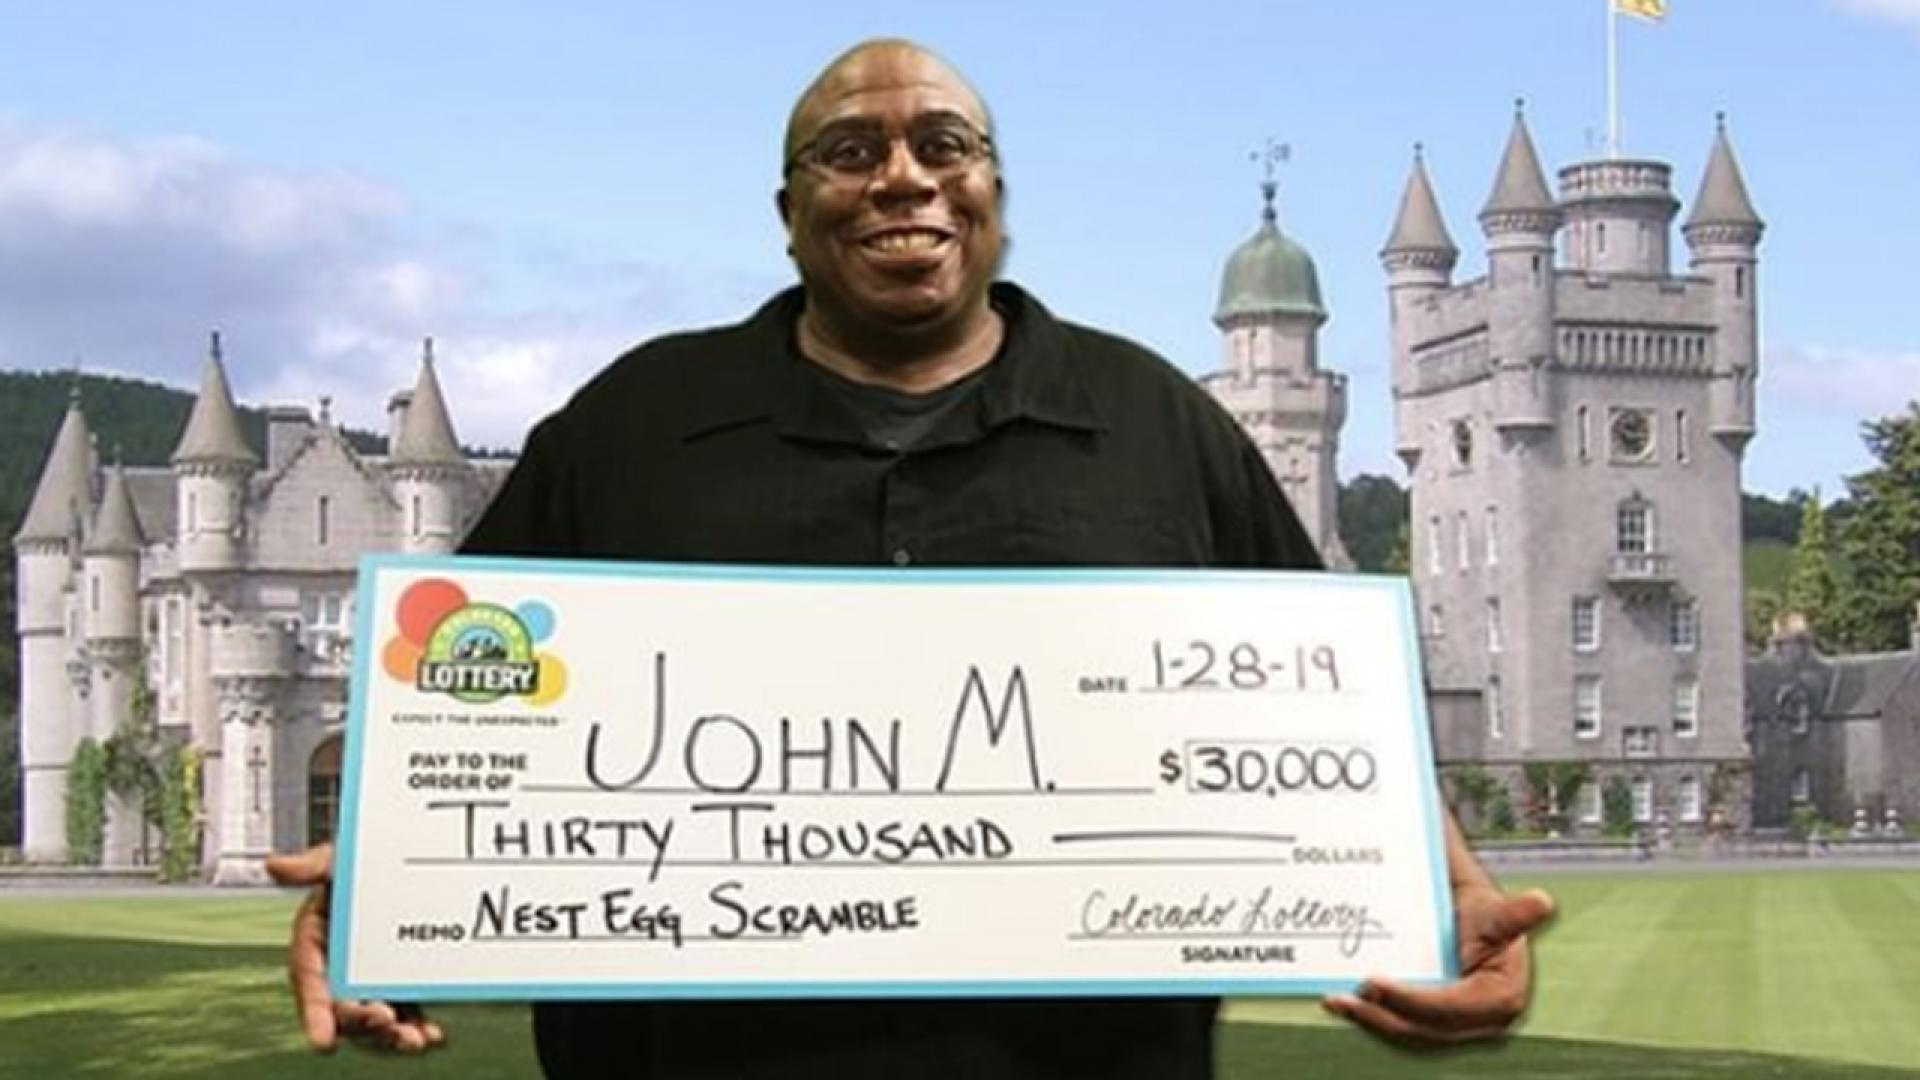 He won $30,000 by mistake.